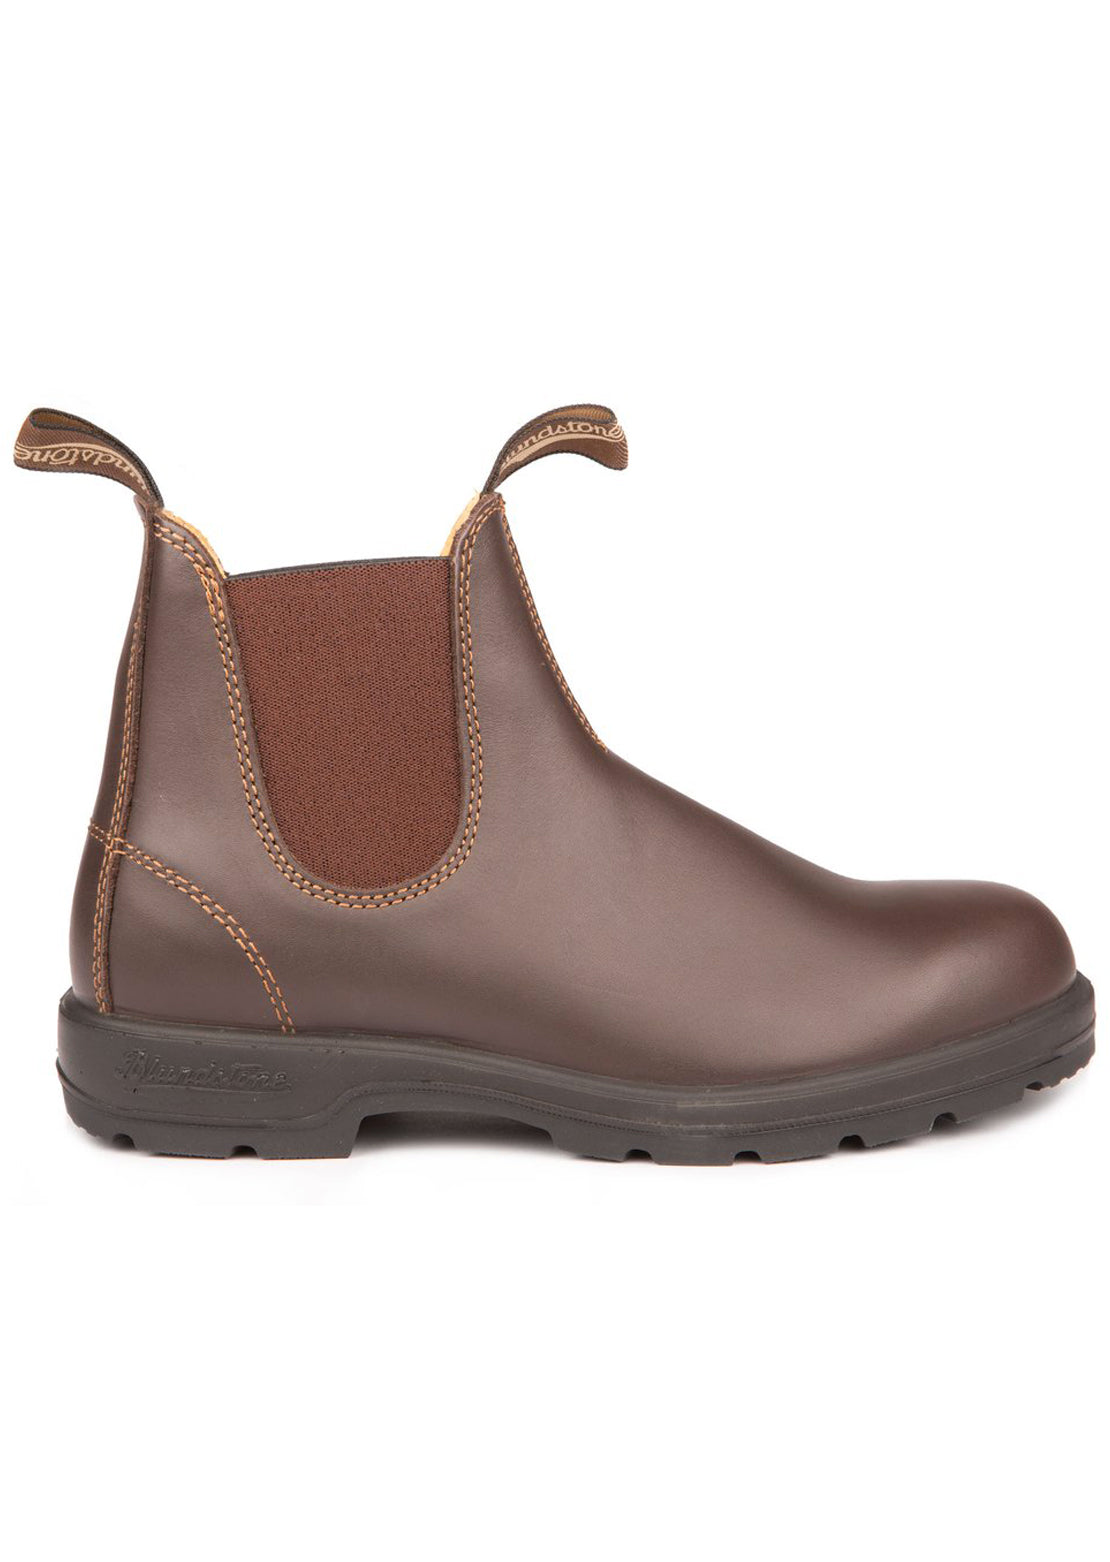 Blundstone 550 Leather Lined Boots (550) Walnut